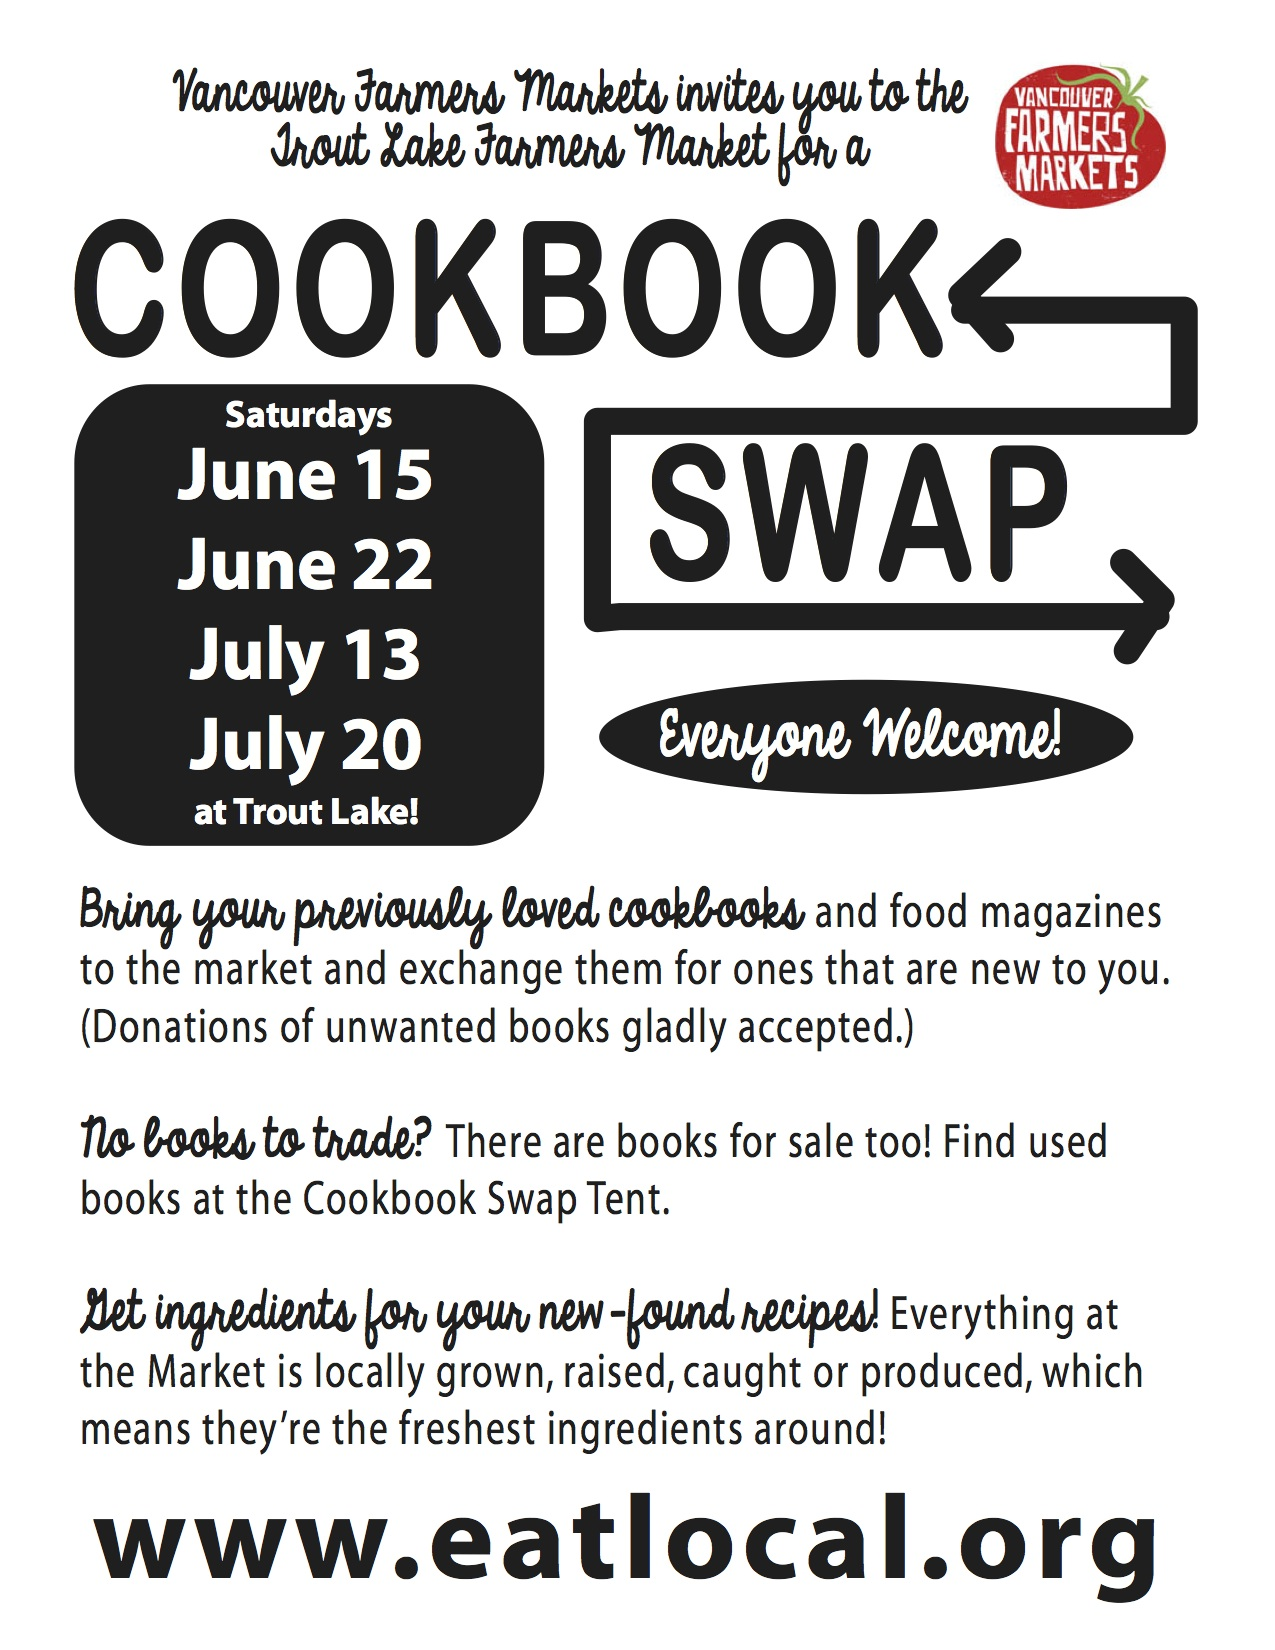 Exchange your old cookbooks for something new-to-you!